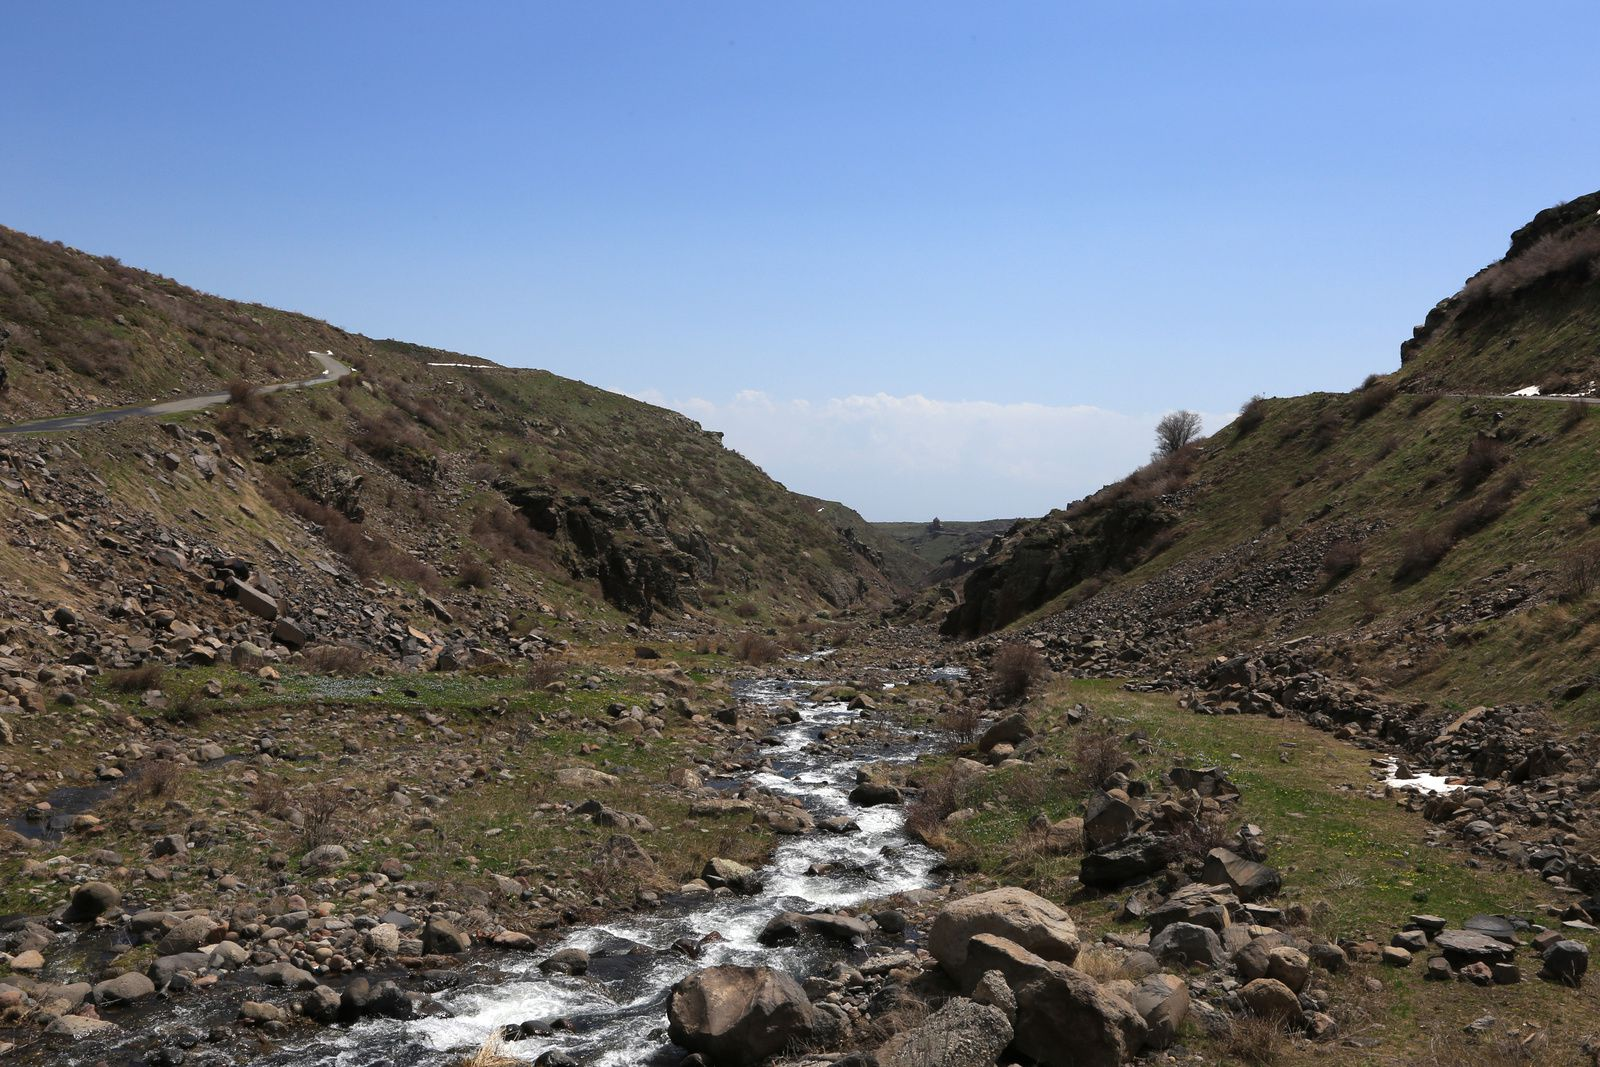 Armenia - climb to the Aragats - photos © Bernard Duyck 2019